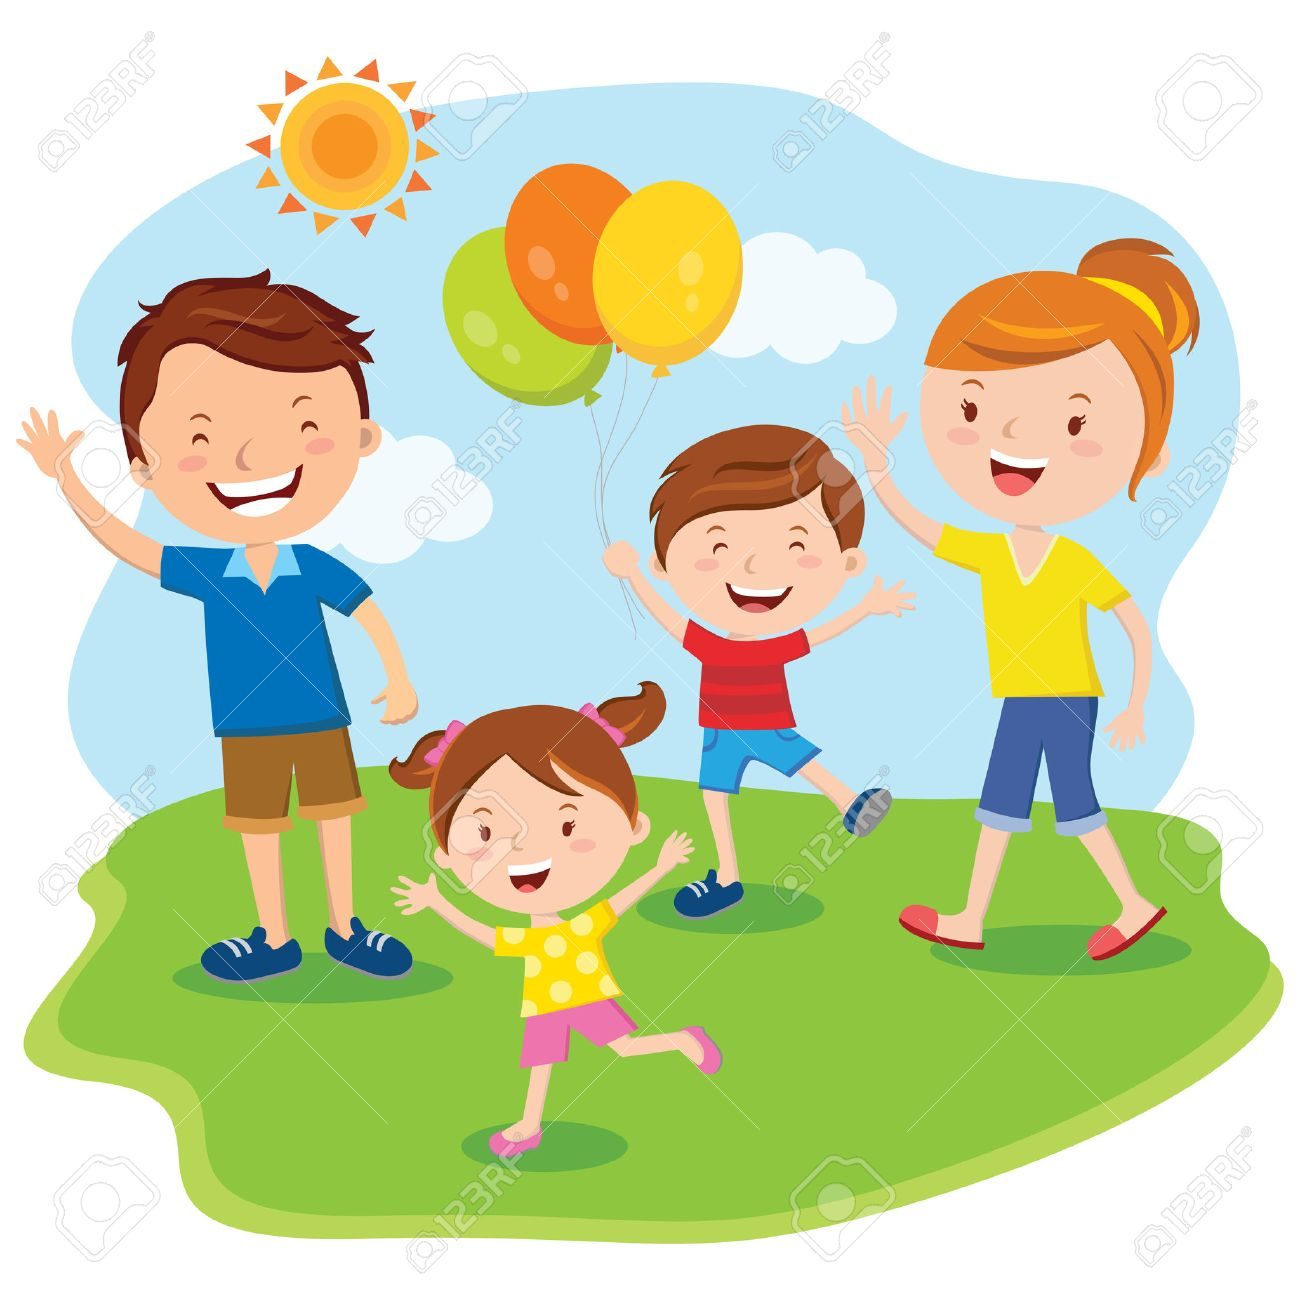 Family day; family outing Stock Vector - 29073063